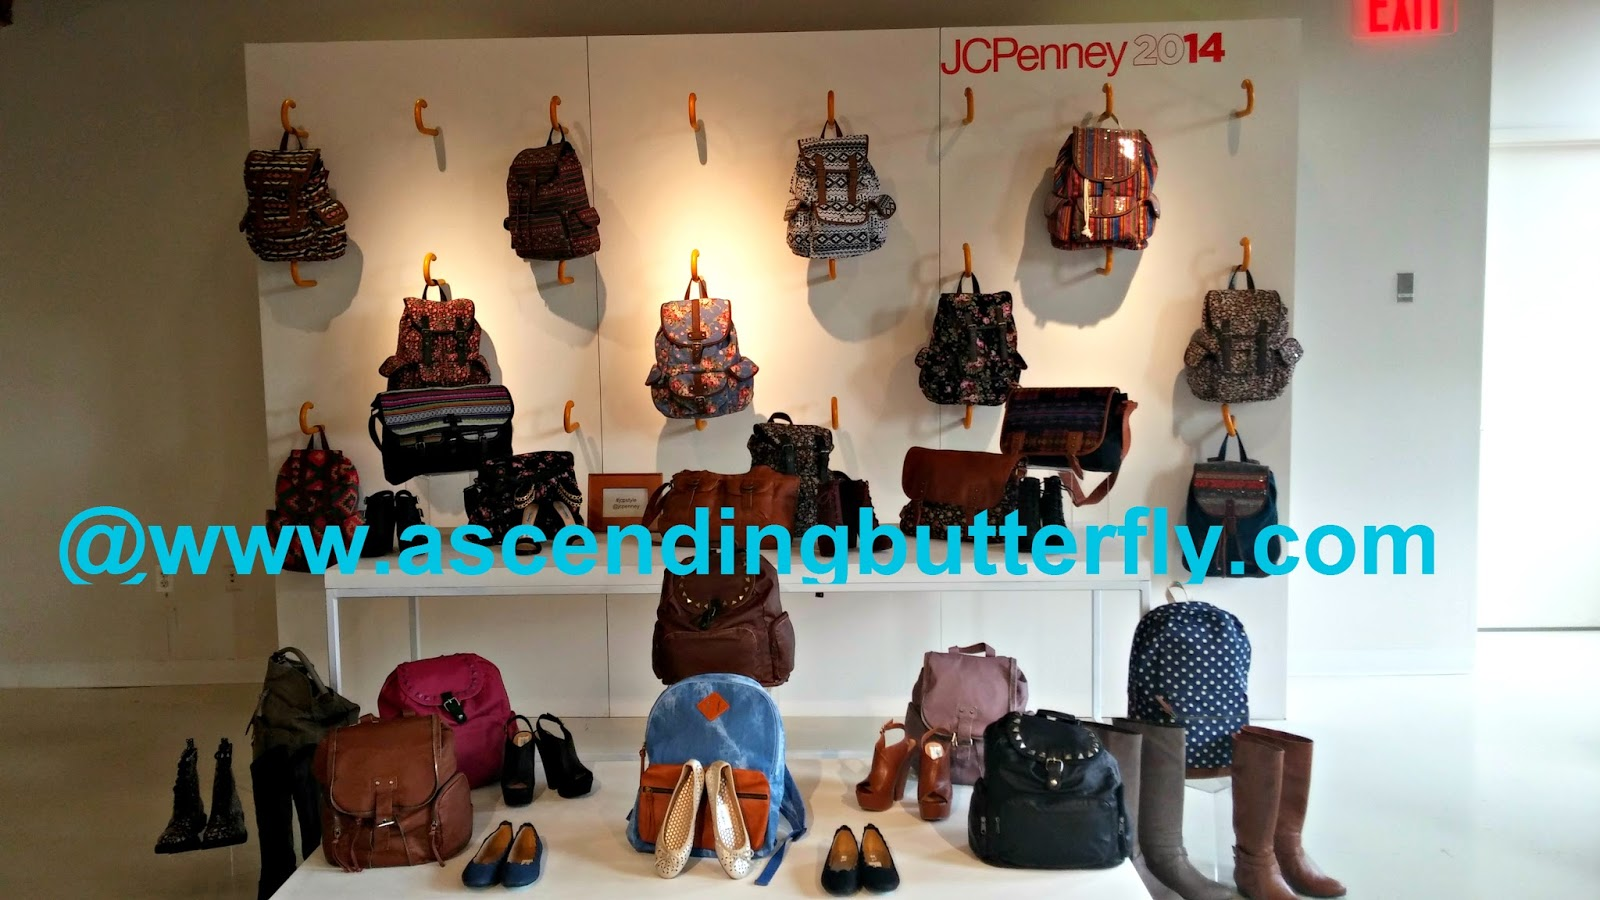 Stylish Backpacks/Book Bags and shoes/boots for Back to School via JCPenney